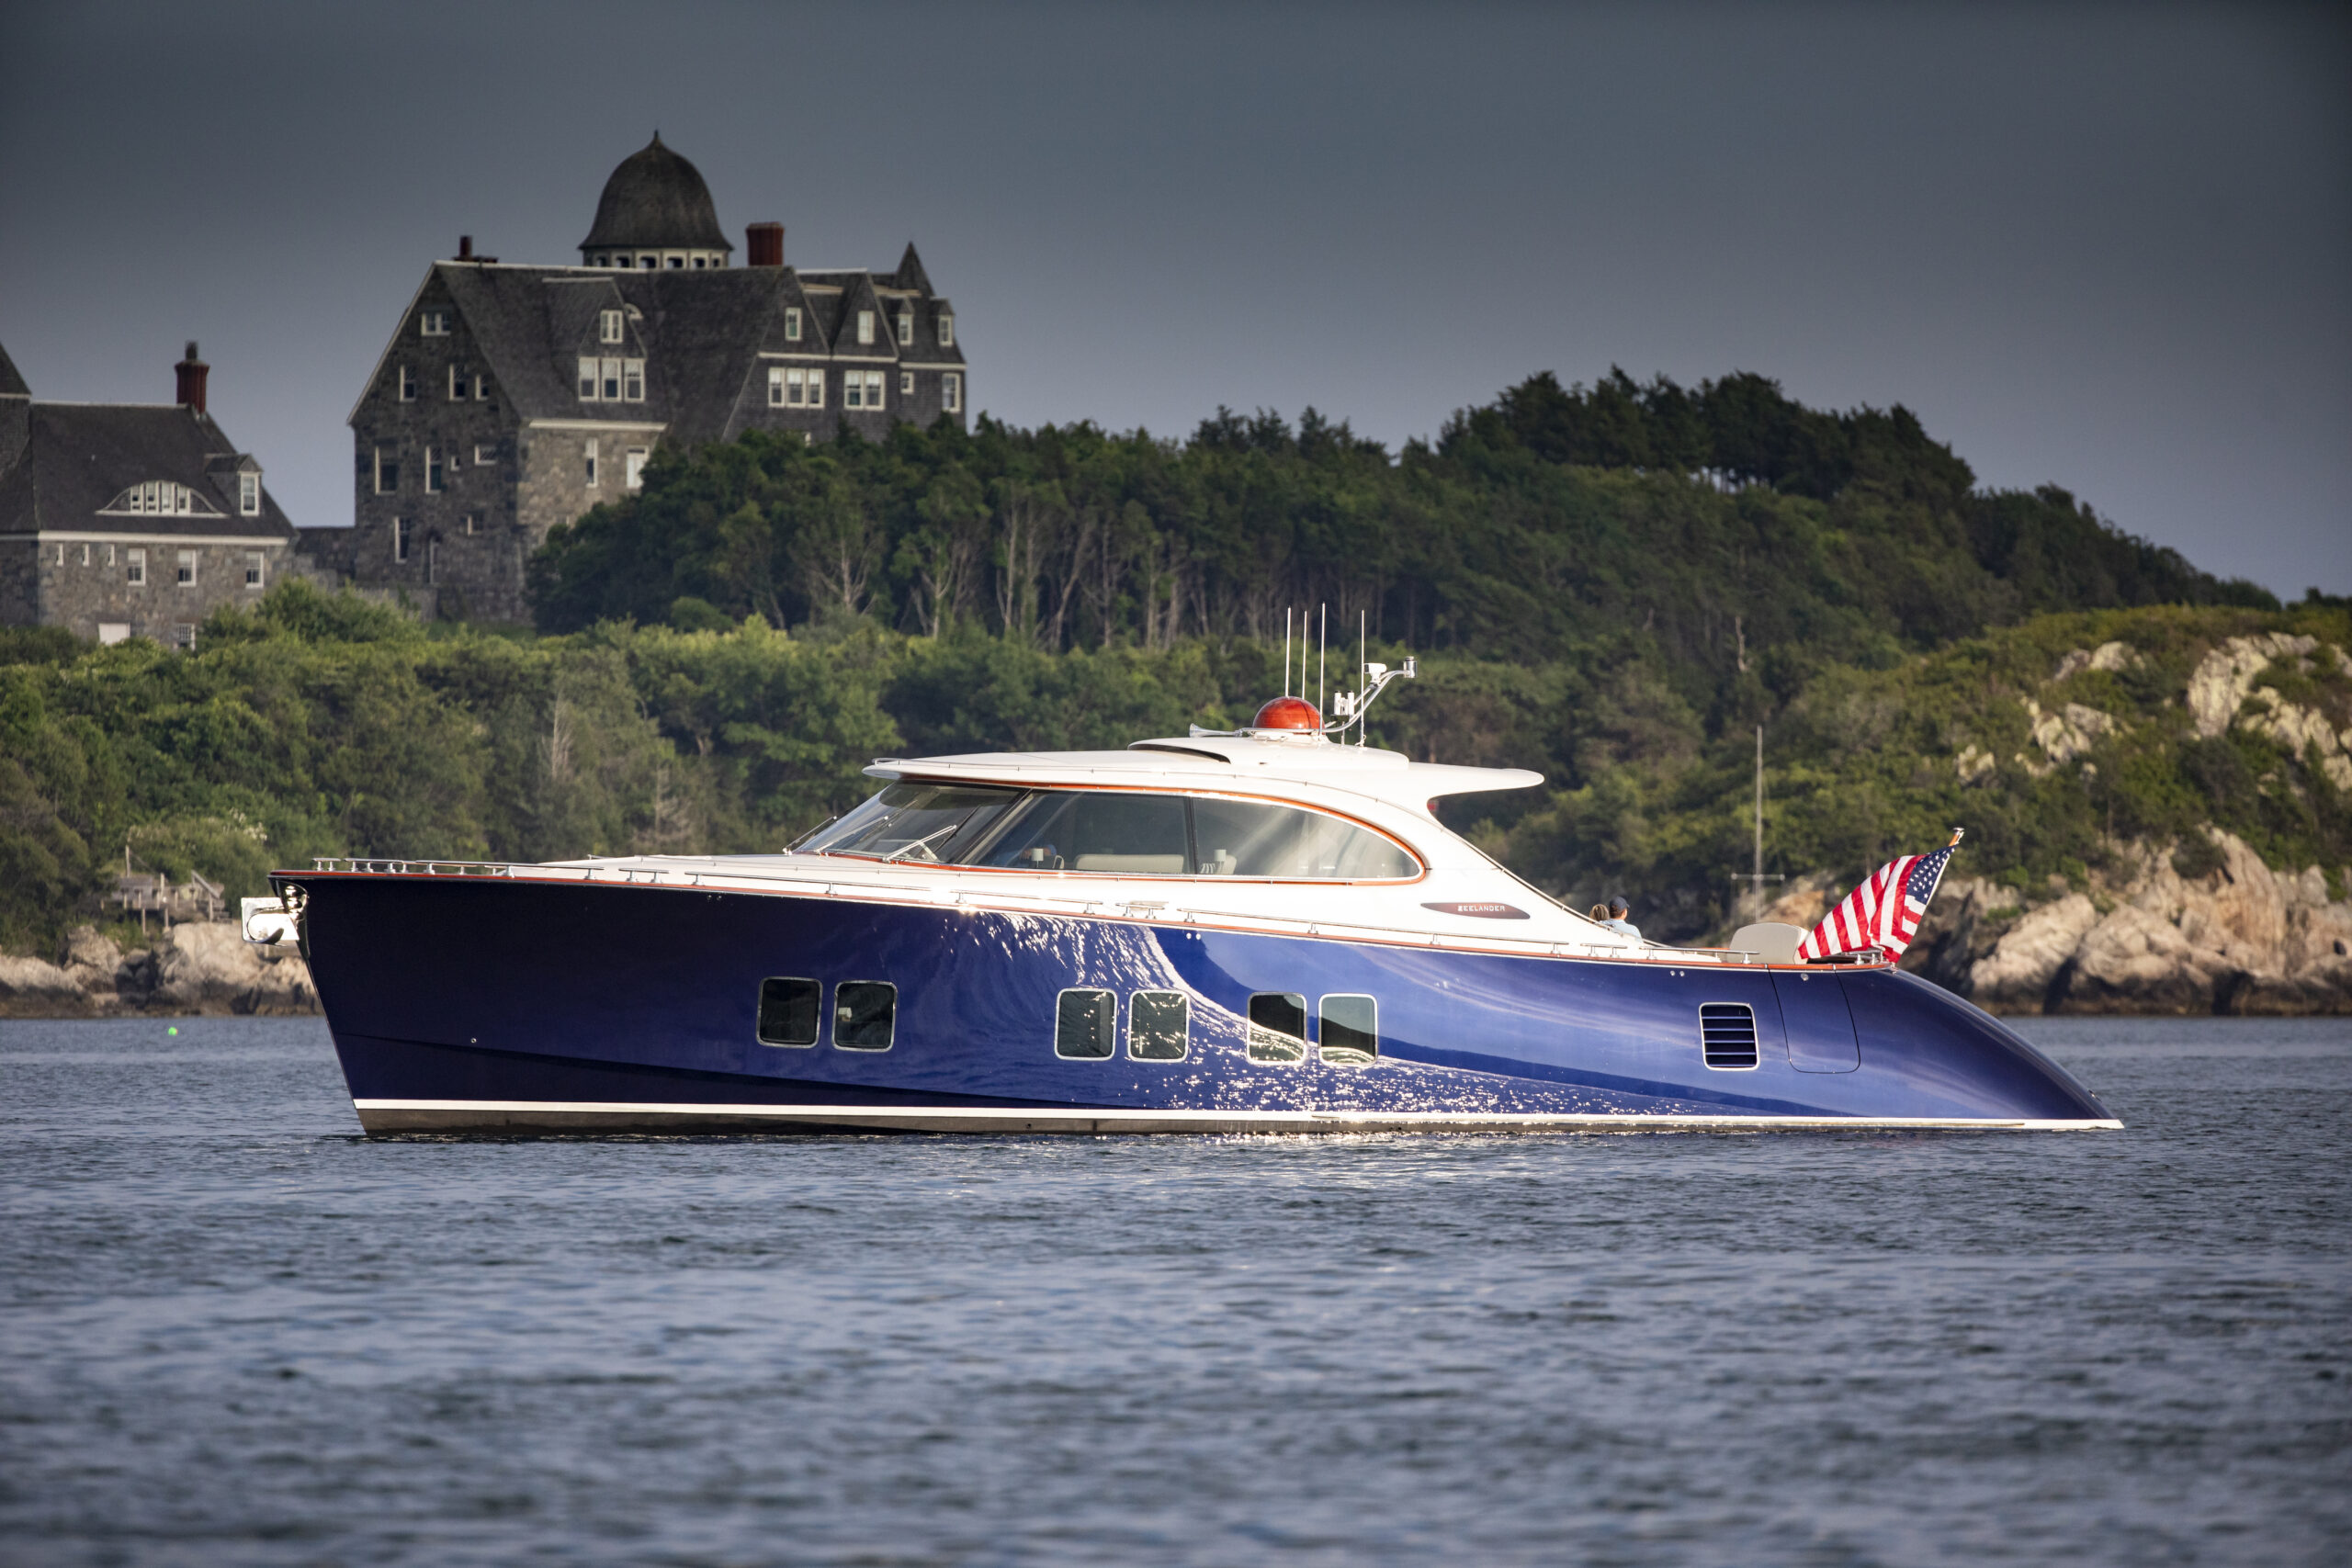 Zeelander Z72 anchored and pictured in daylight from side